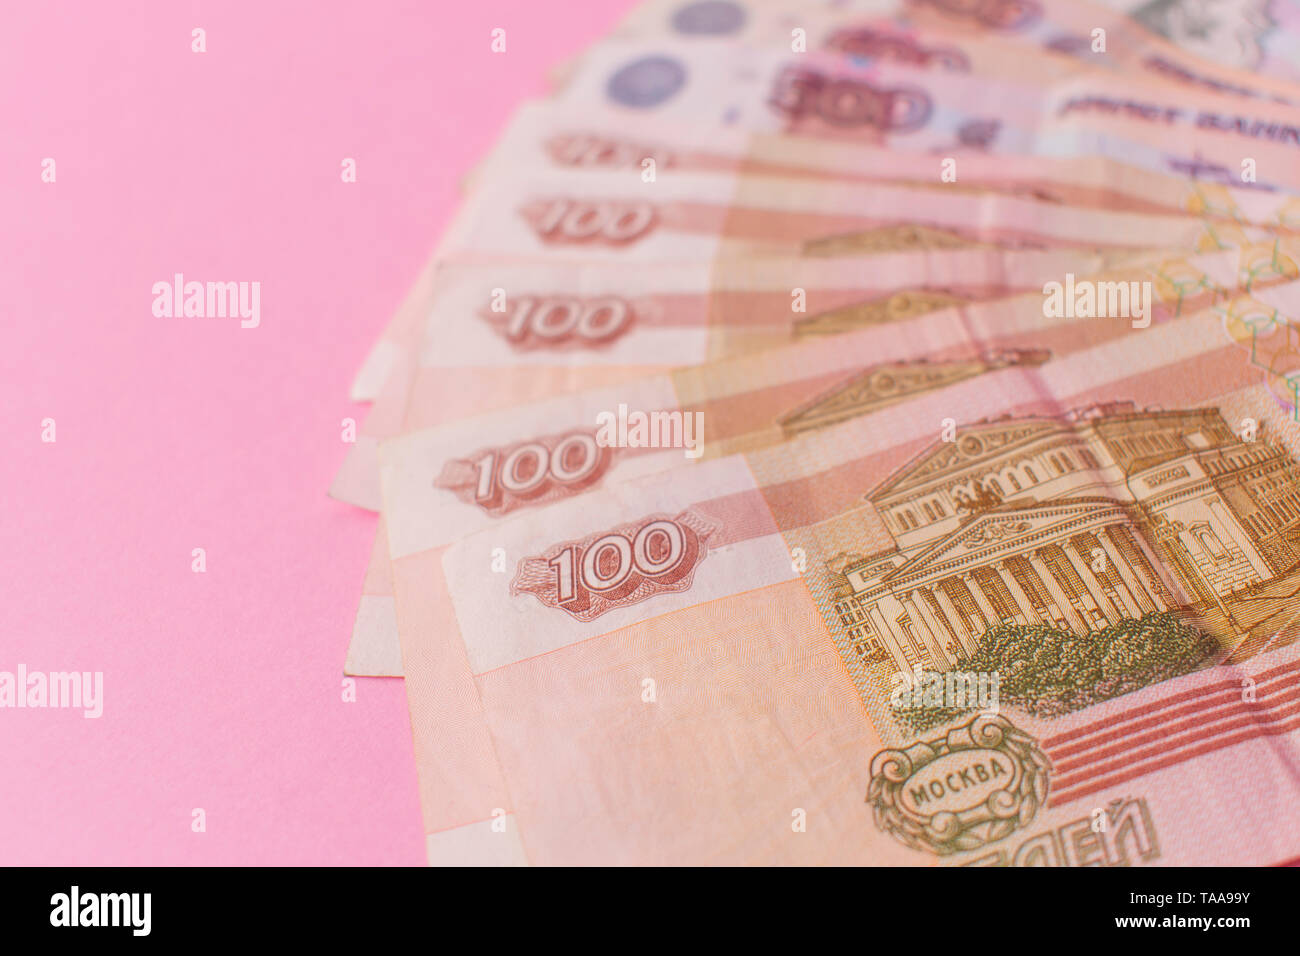 A bundle of Russian money in the form of a fan on a pink background. The concept of poverty, lack of money, poverty. Copy space. Stock Photo